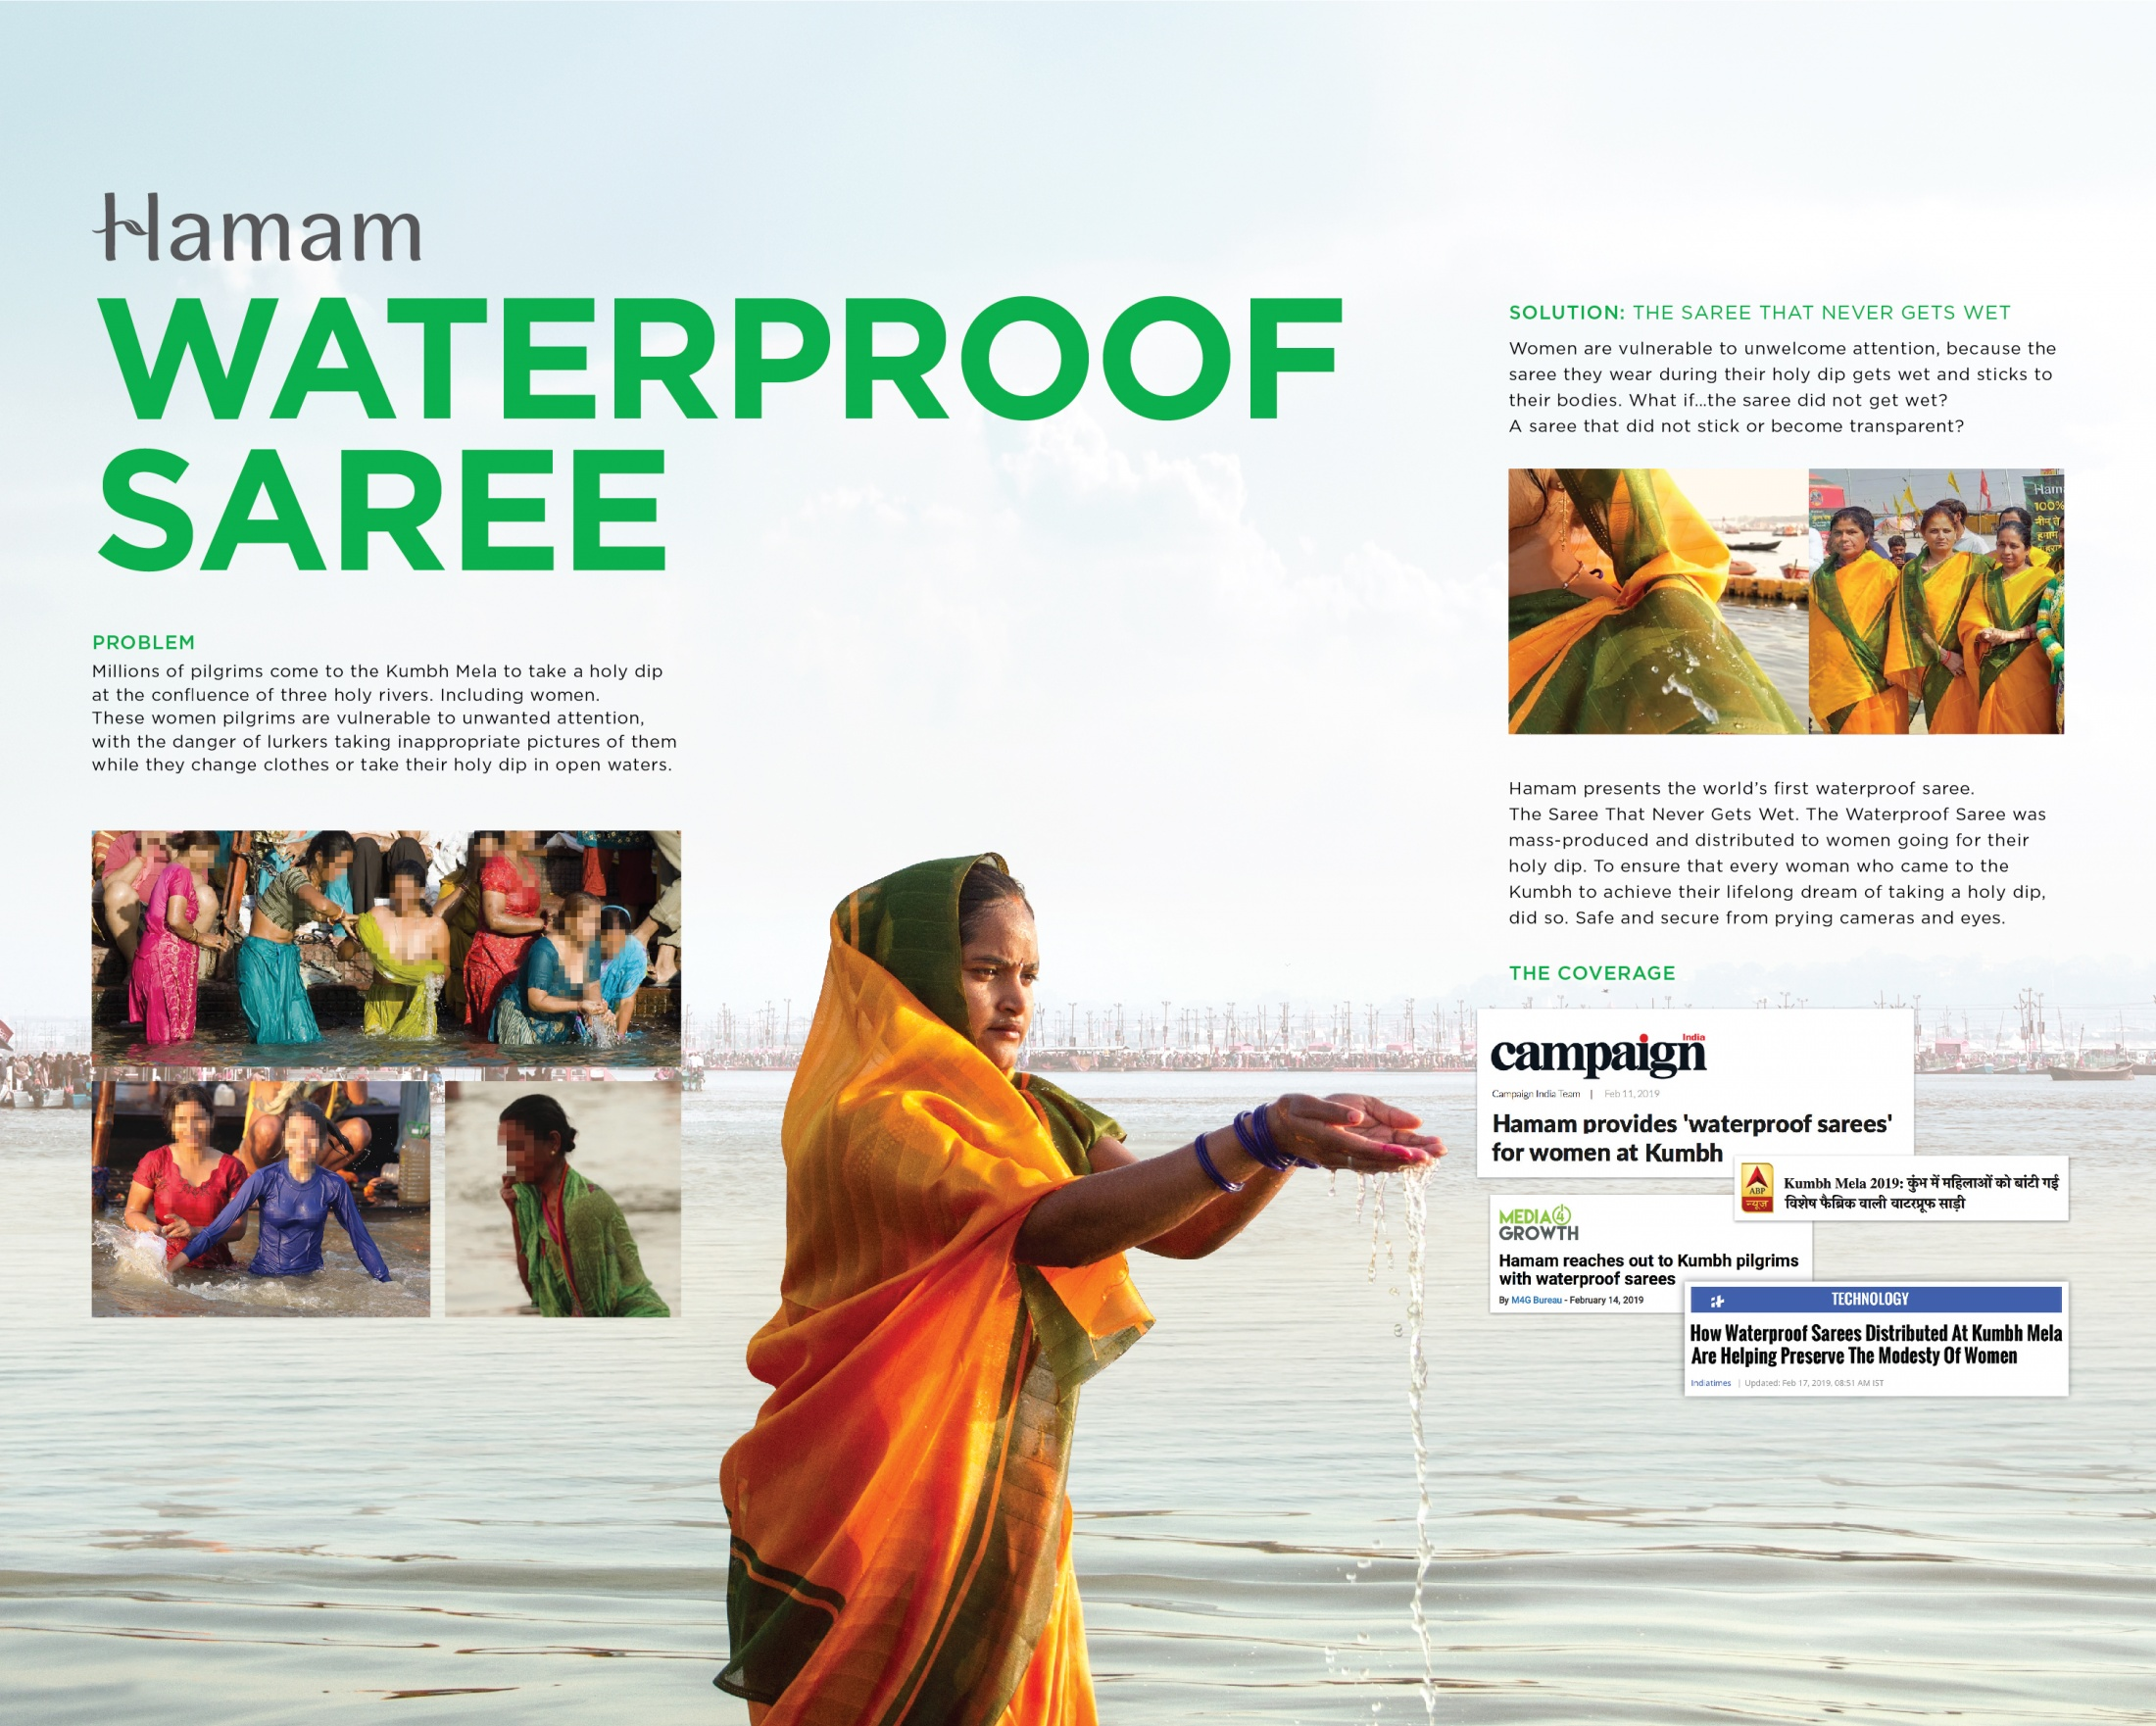 Image Media for The Waterproof Saree